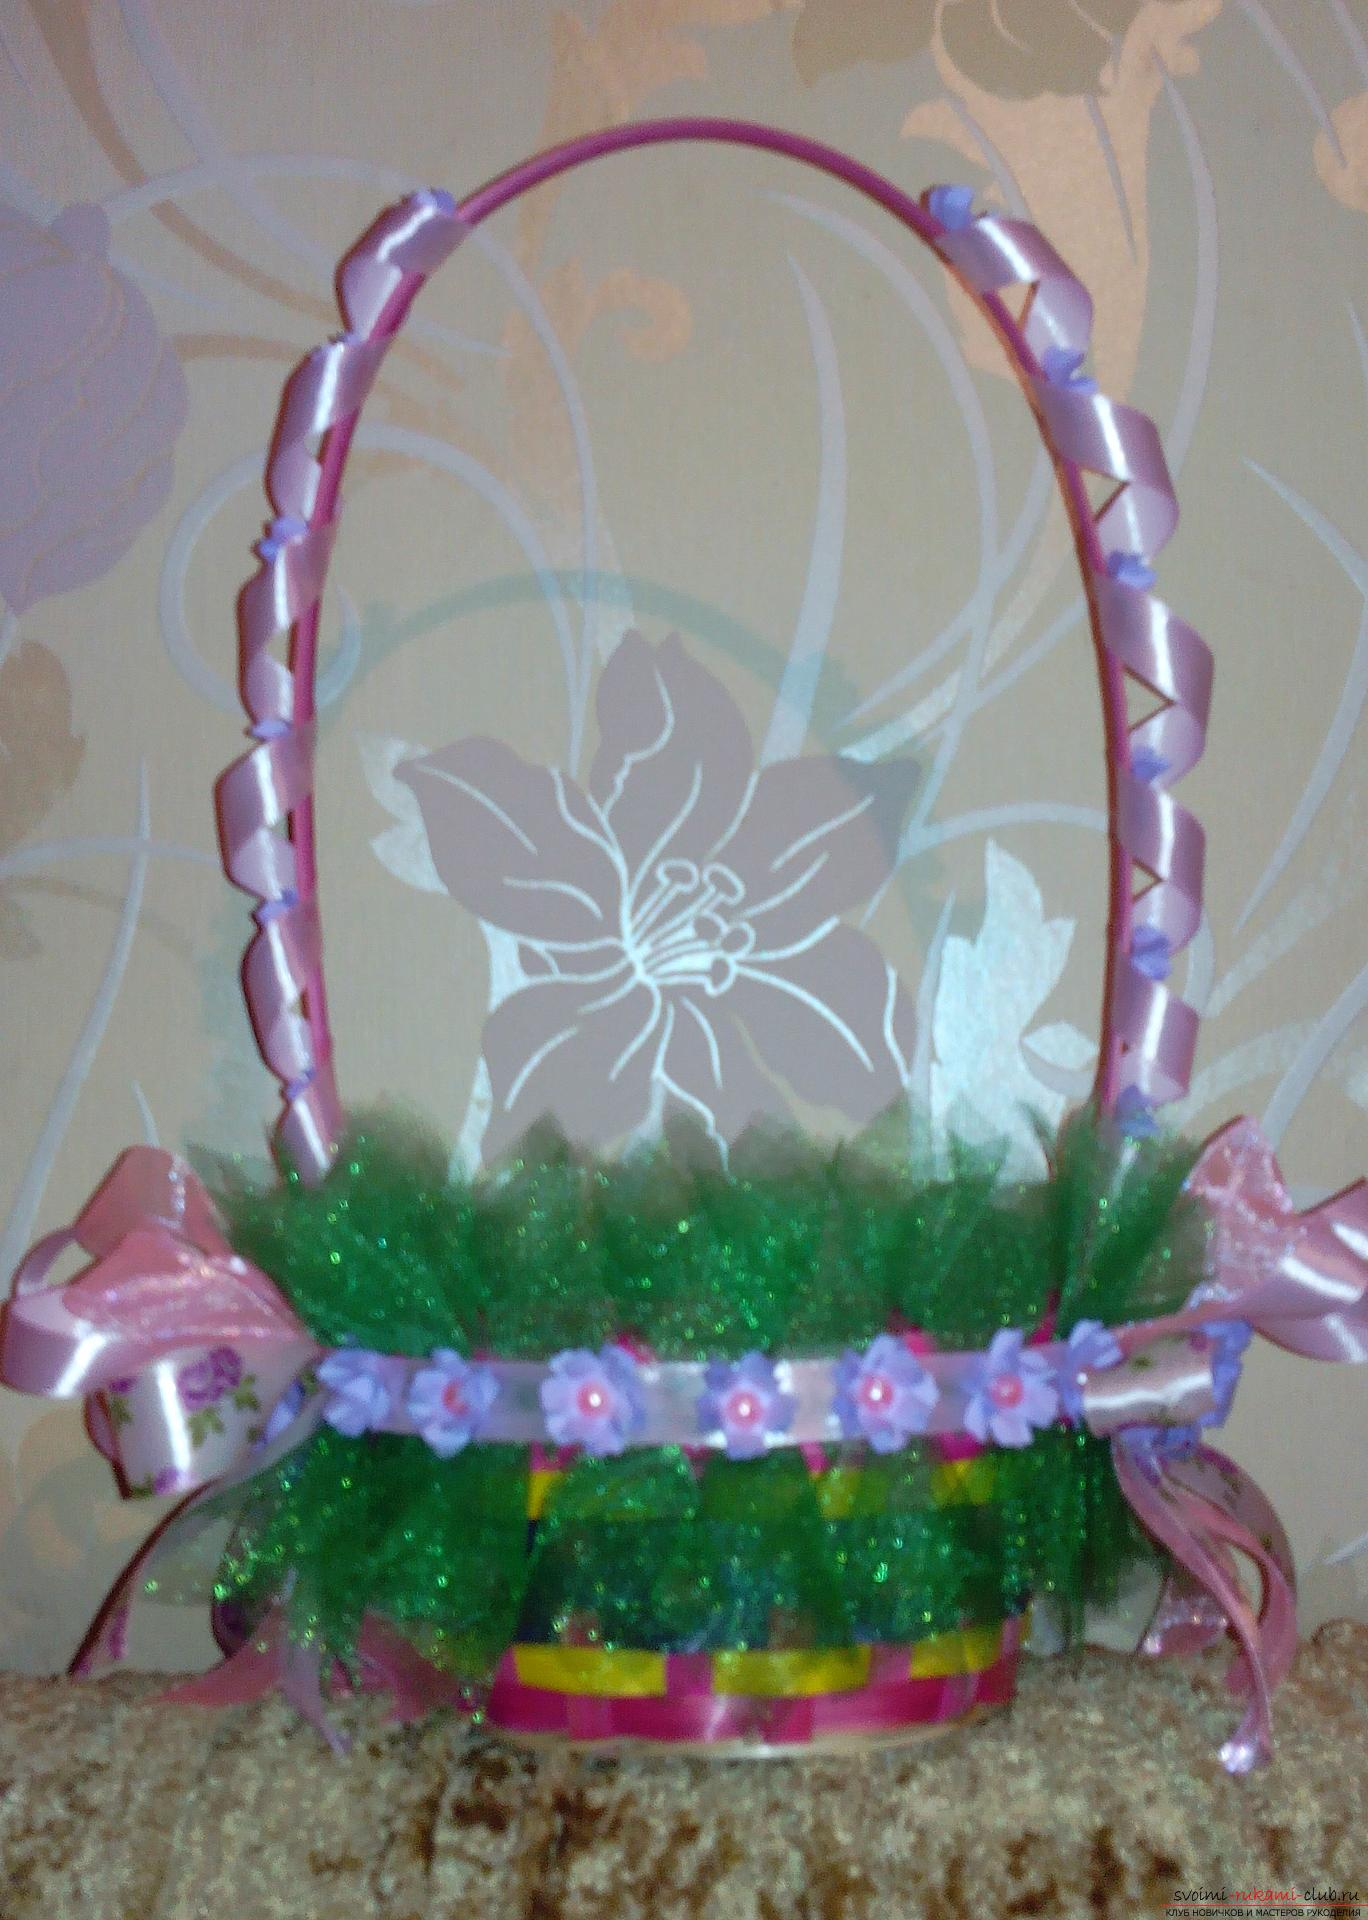 Baskets for a gift by March 8. Photo # 2